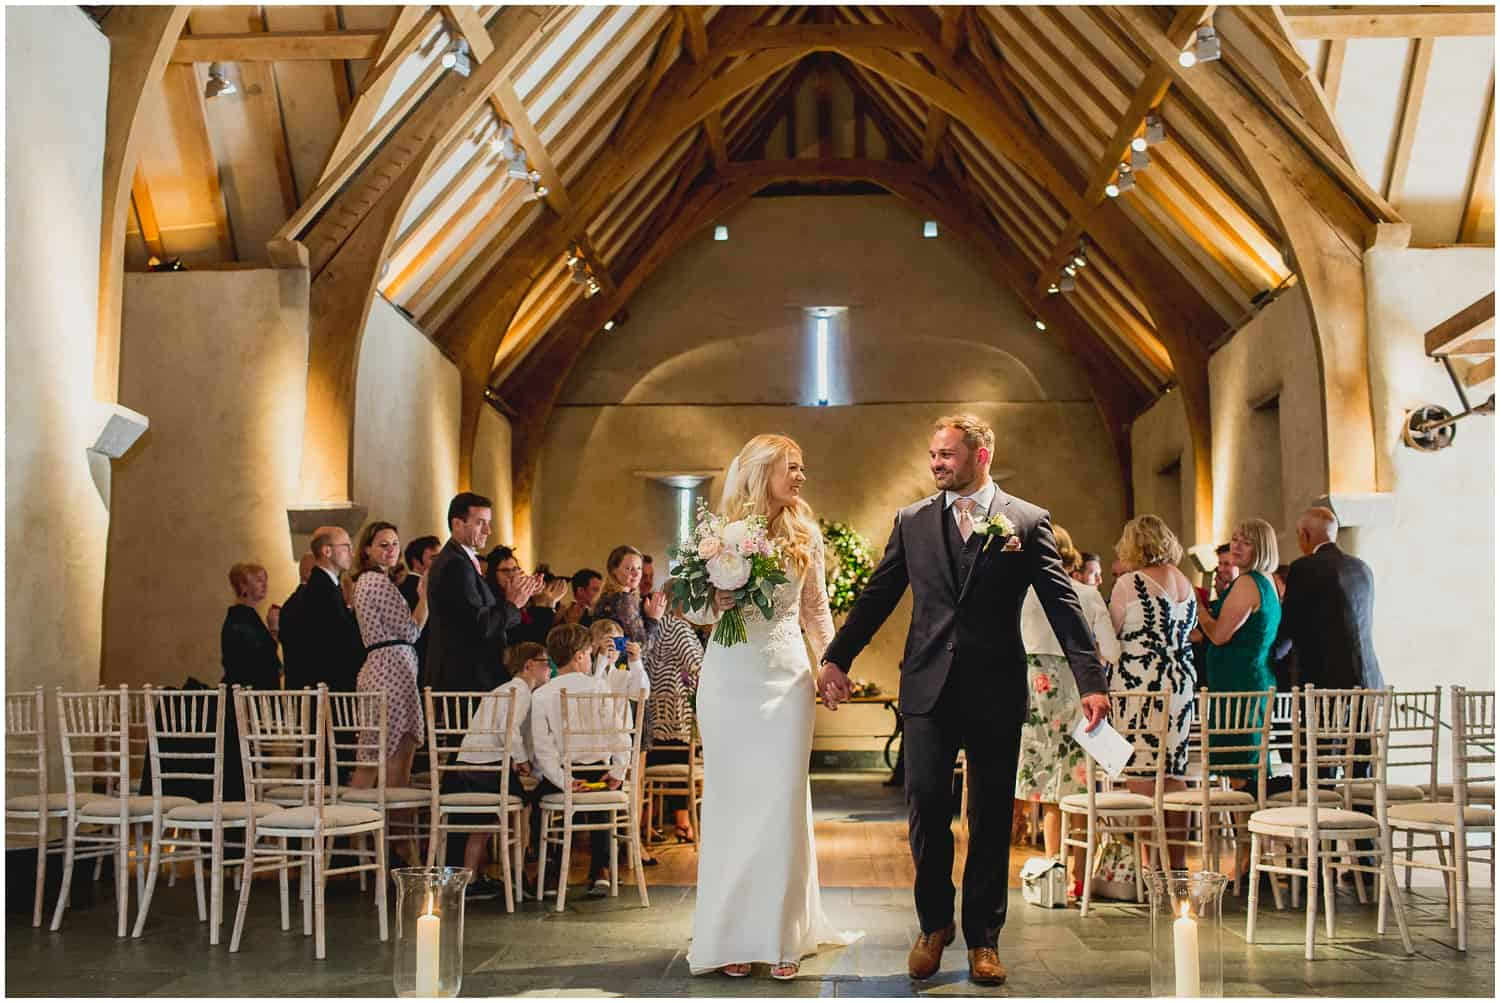 The Great Barn Devon - Liz & James - Photograph by Rebecca Roundhill